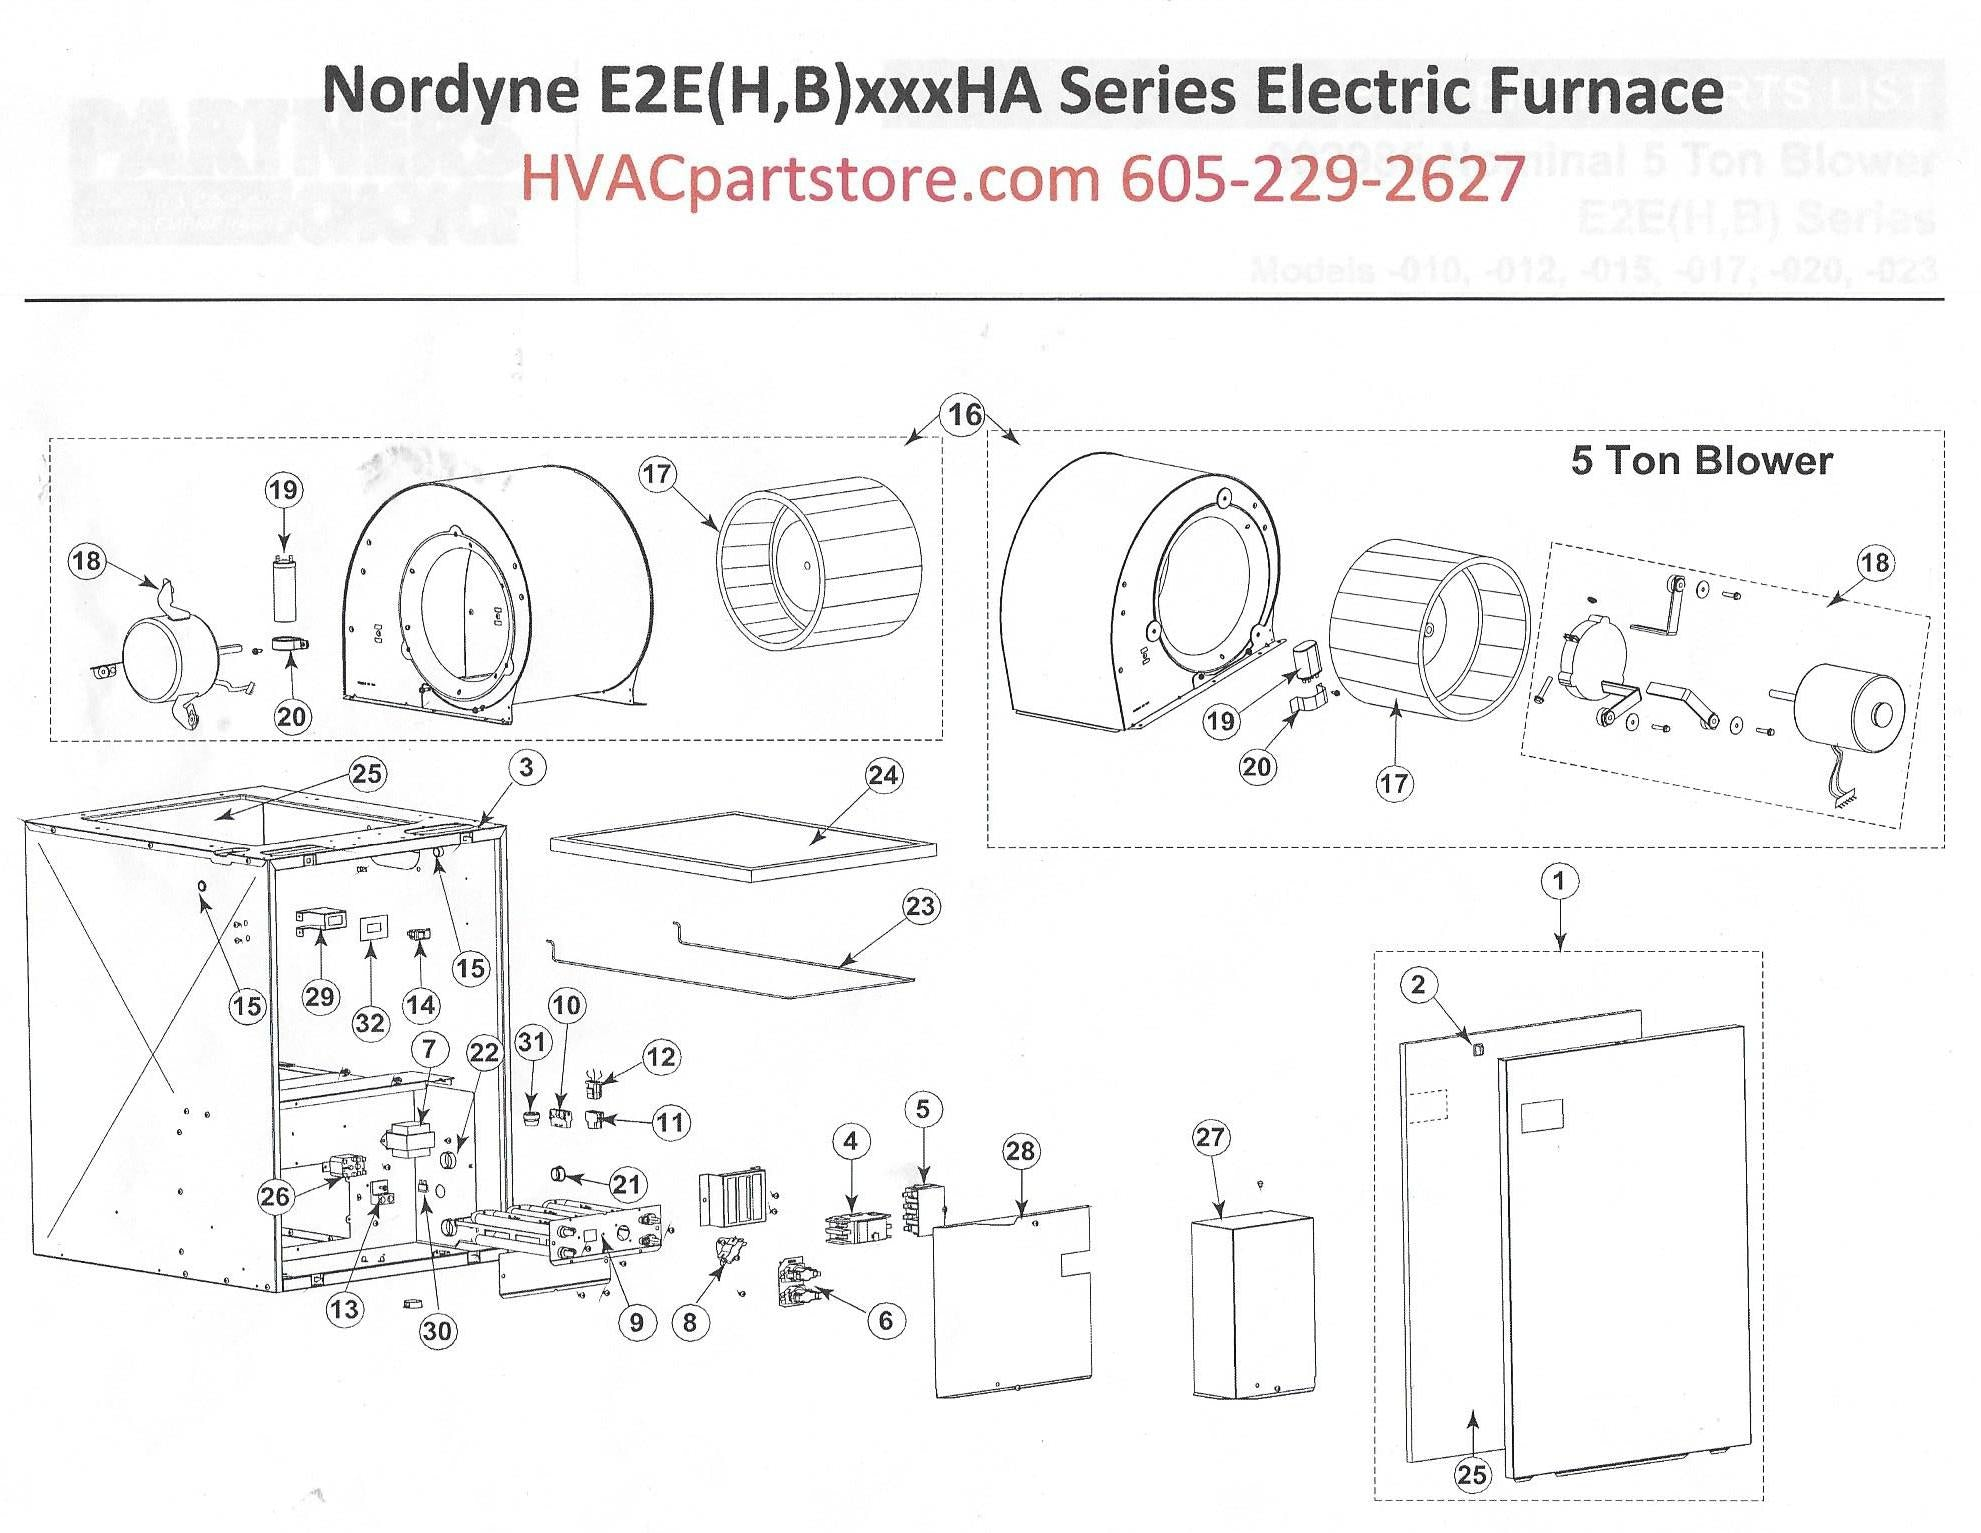 Wiring Diagram For Nordyne Electric Furnace Bookmark About Mobile Home Intertherm E2eb015hb Parts Hvacpartstore Rh Myshopify Com Blower